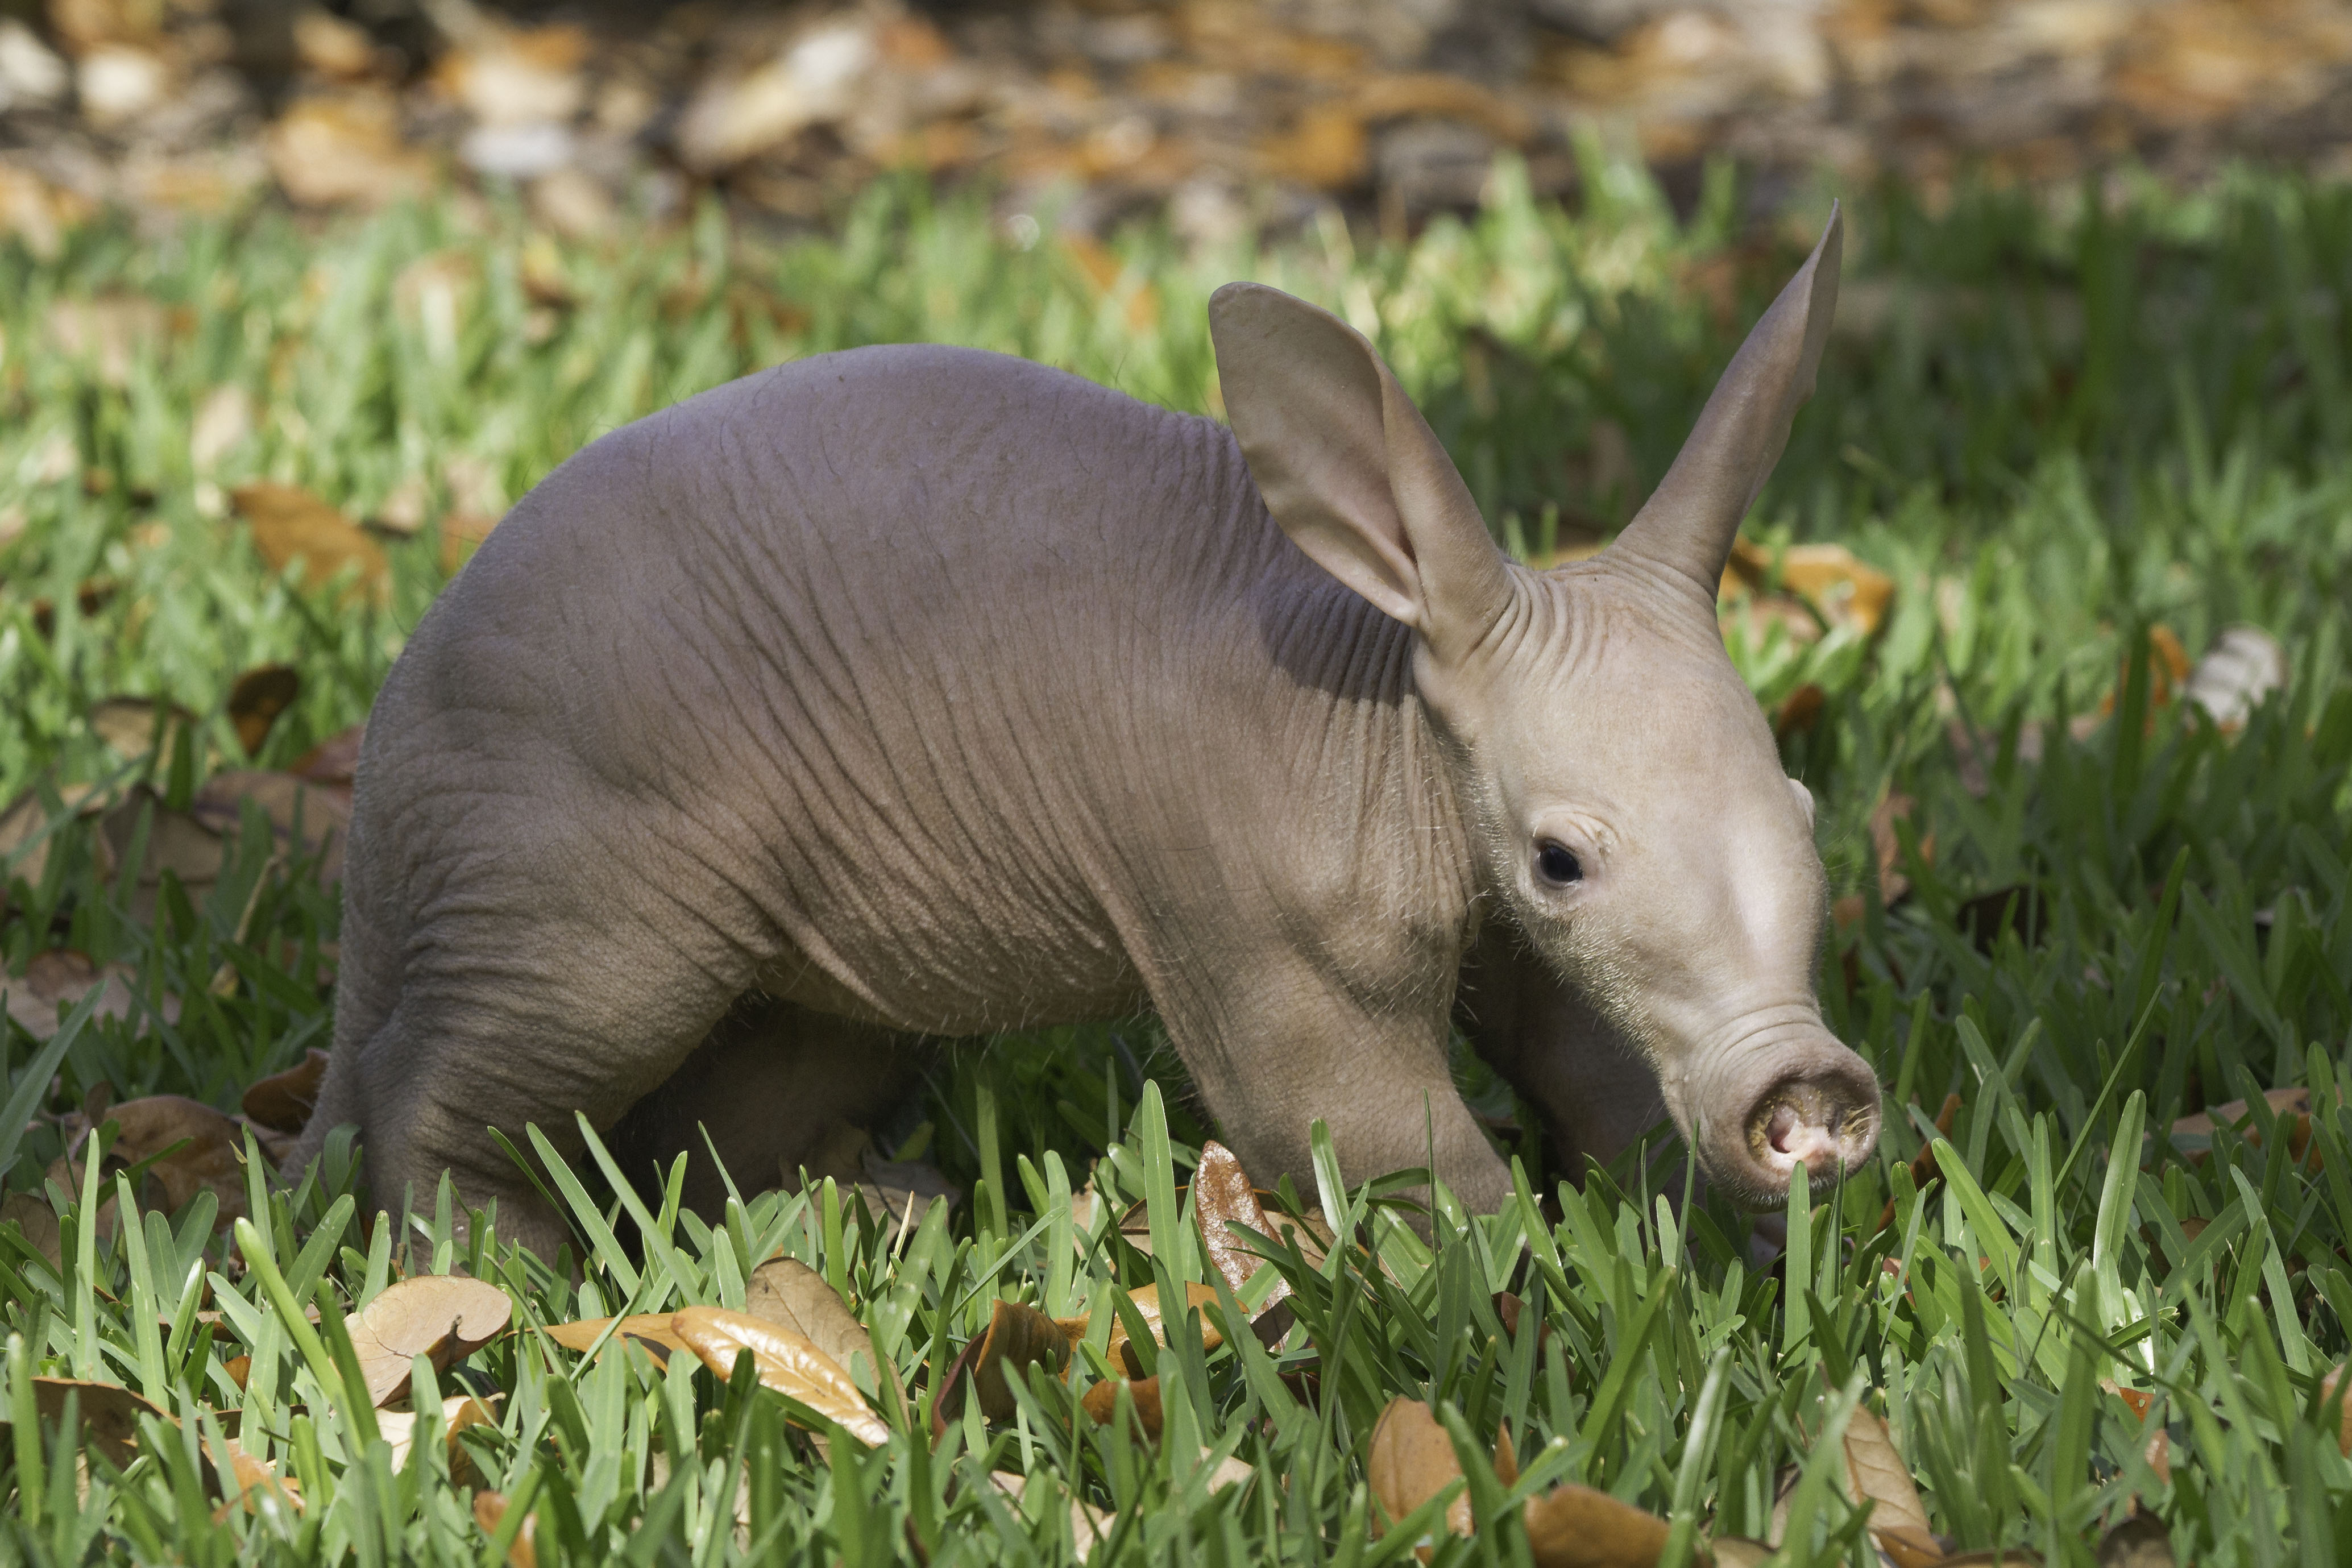 Busch Gardens Tampa Baby Aardvark Feb 2013 2 On The Go